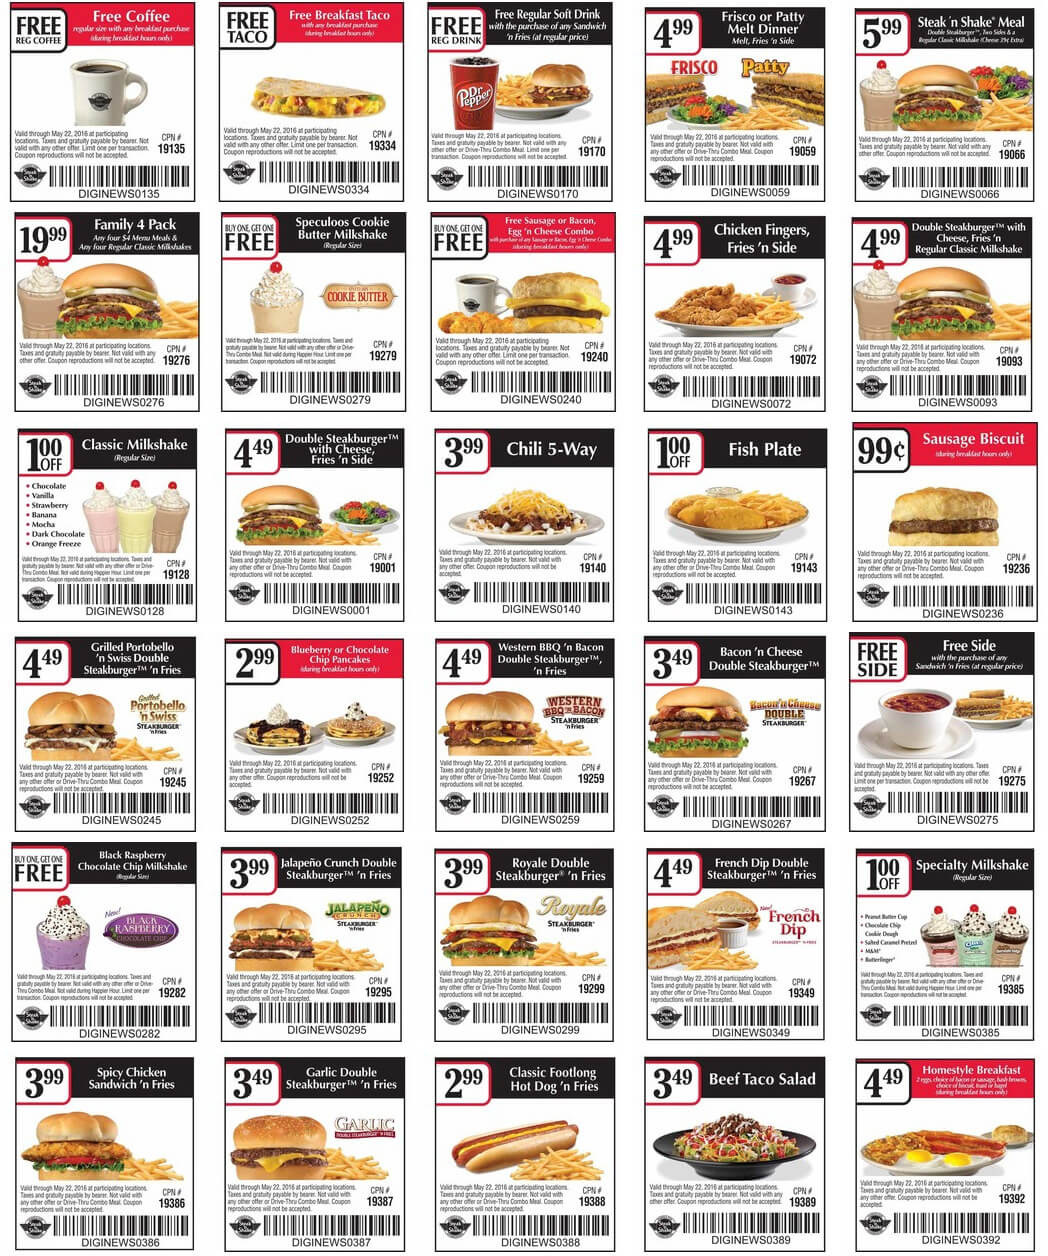 Steak n Shake Coupon October 2016 Free coffee, breakfast taco & more at Steak n Shake